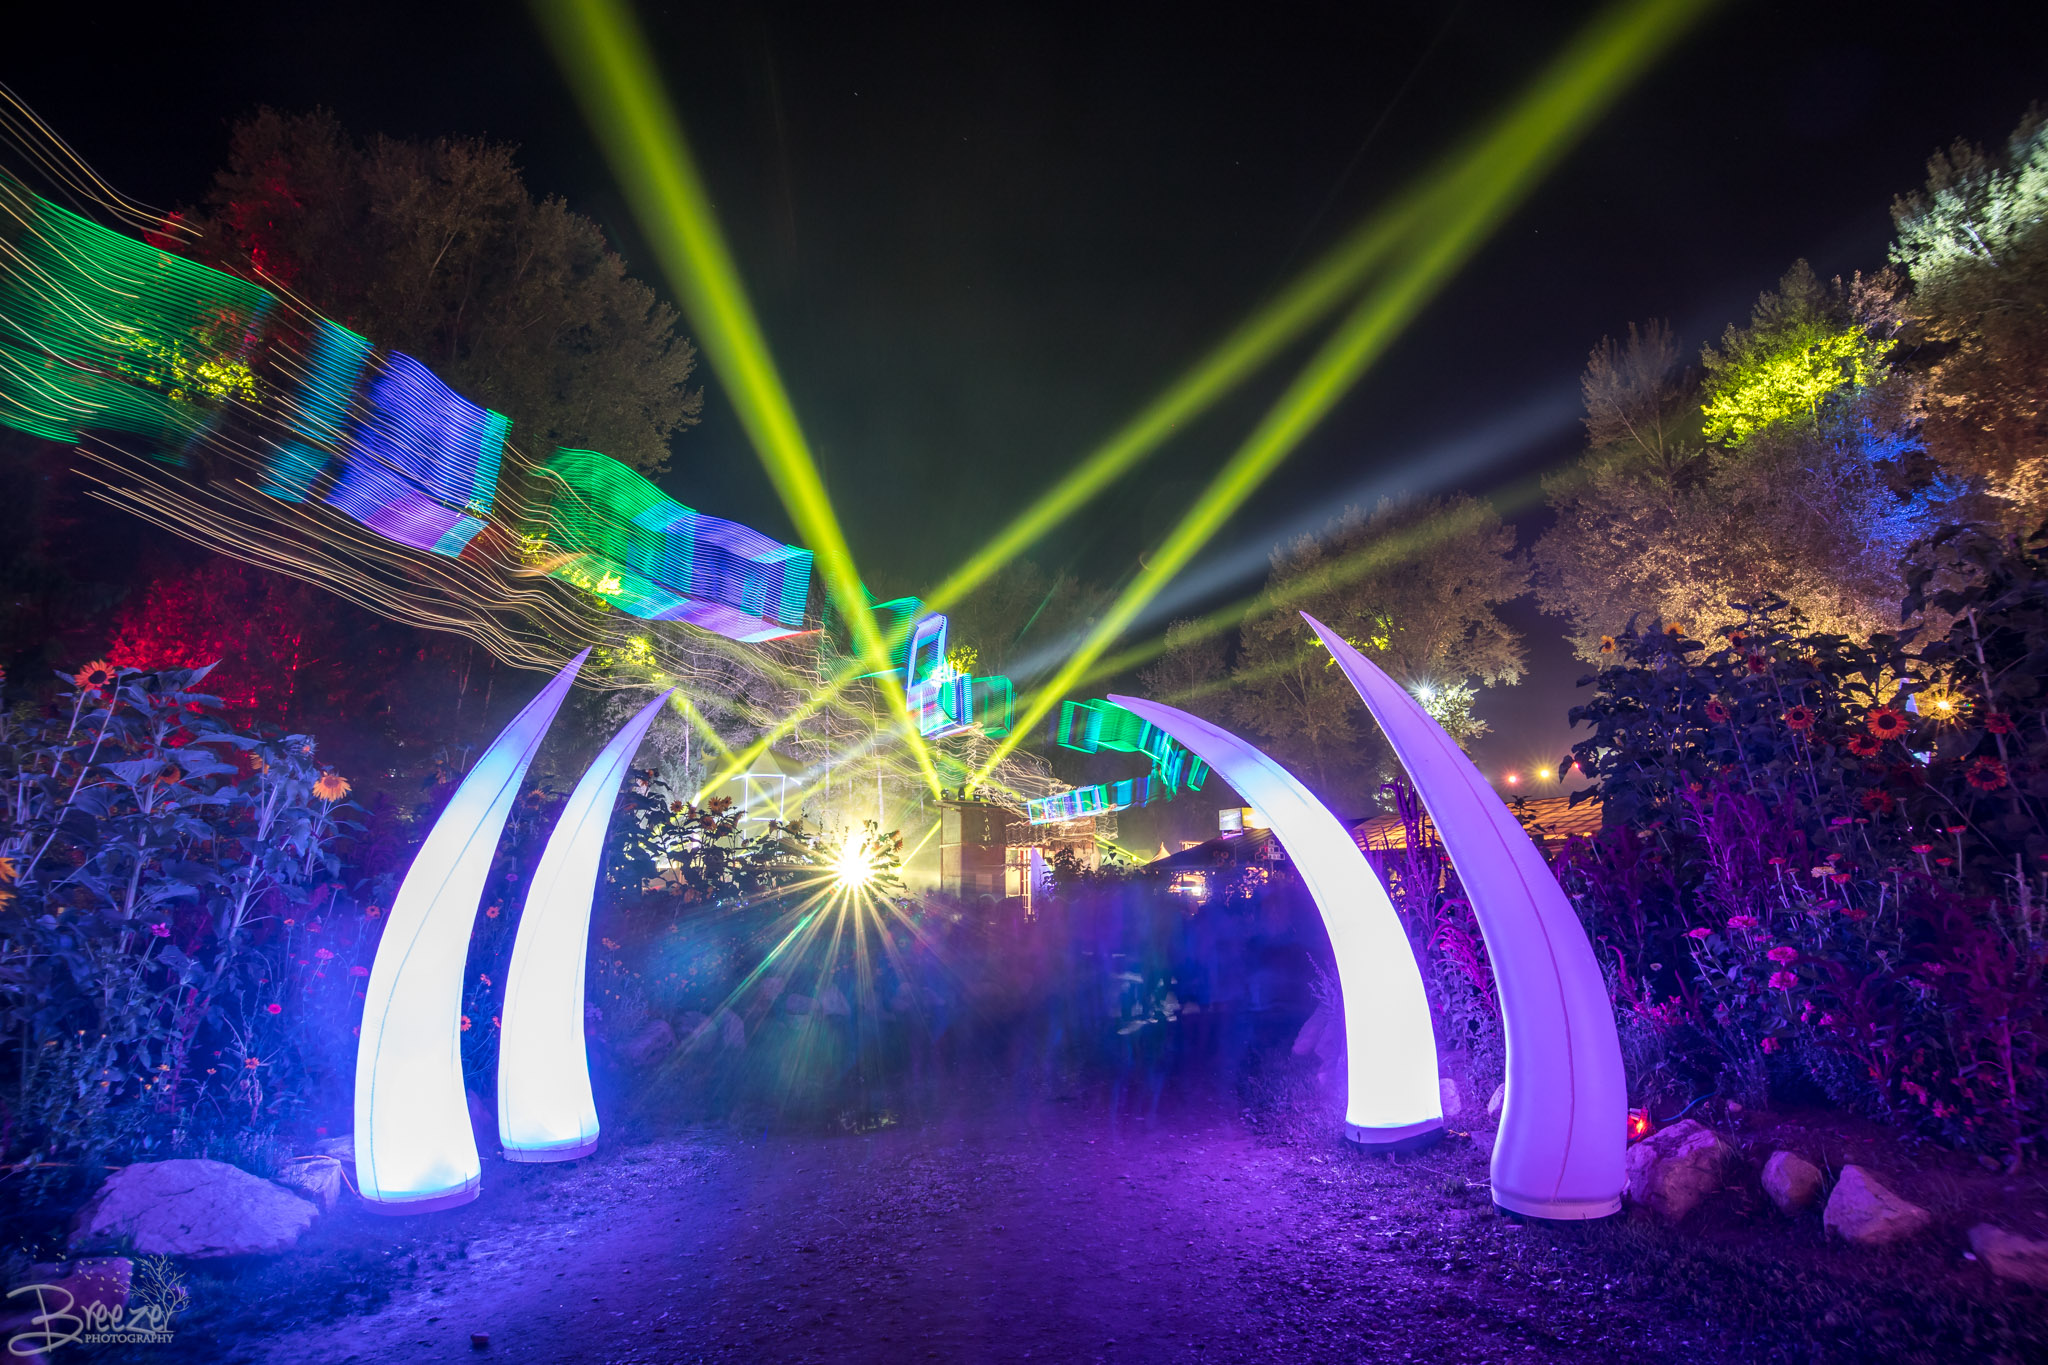 Brie'Ana Breeze Photography & Media - Shambhala 2018-0255.jpg